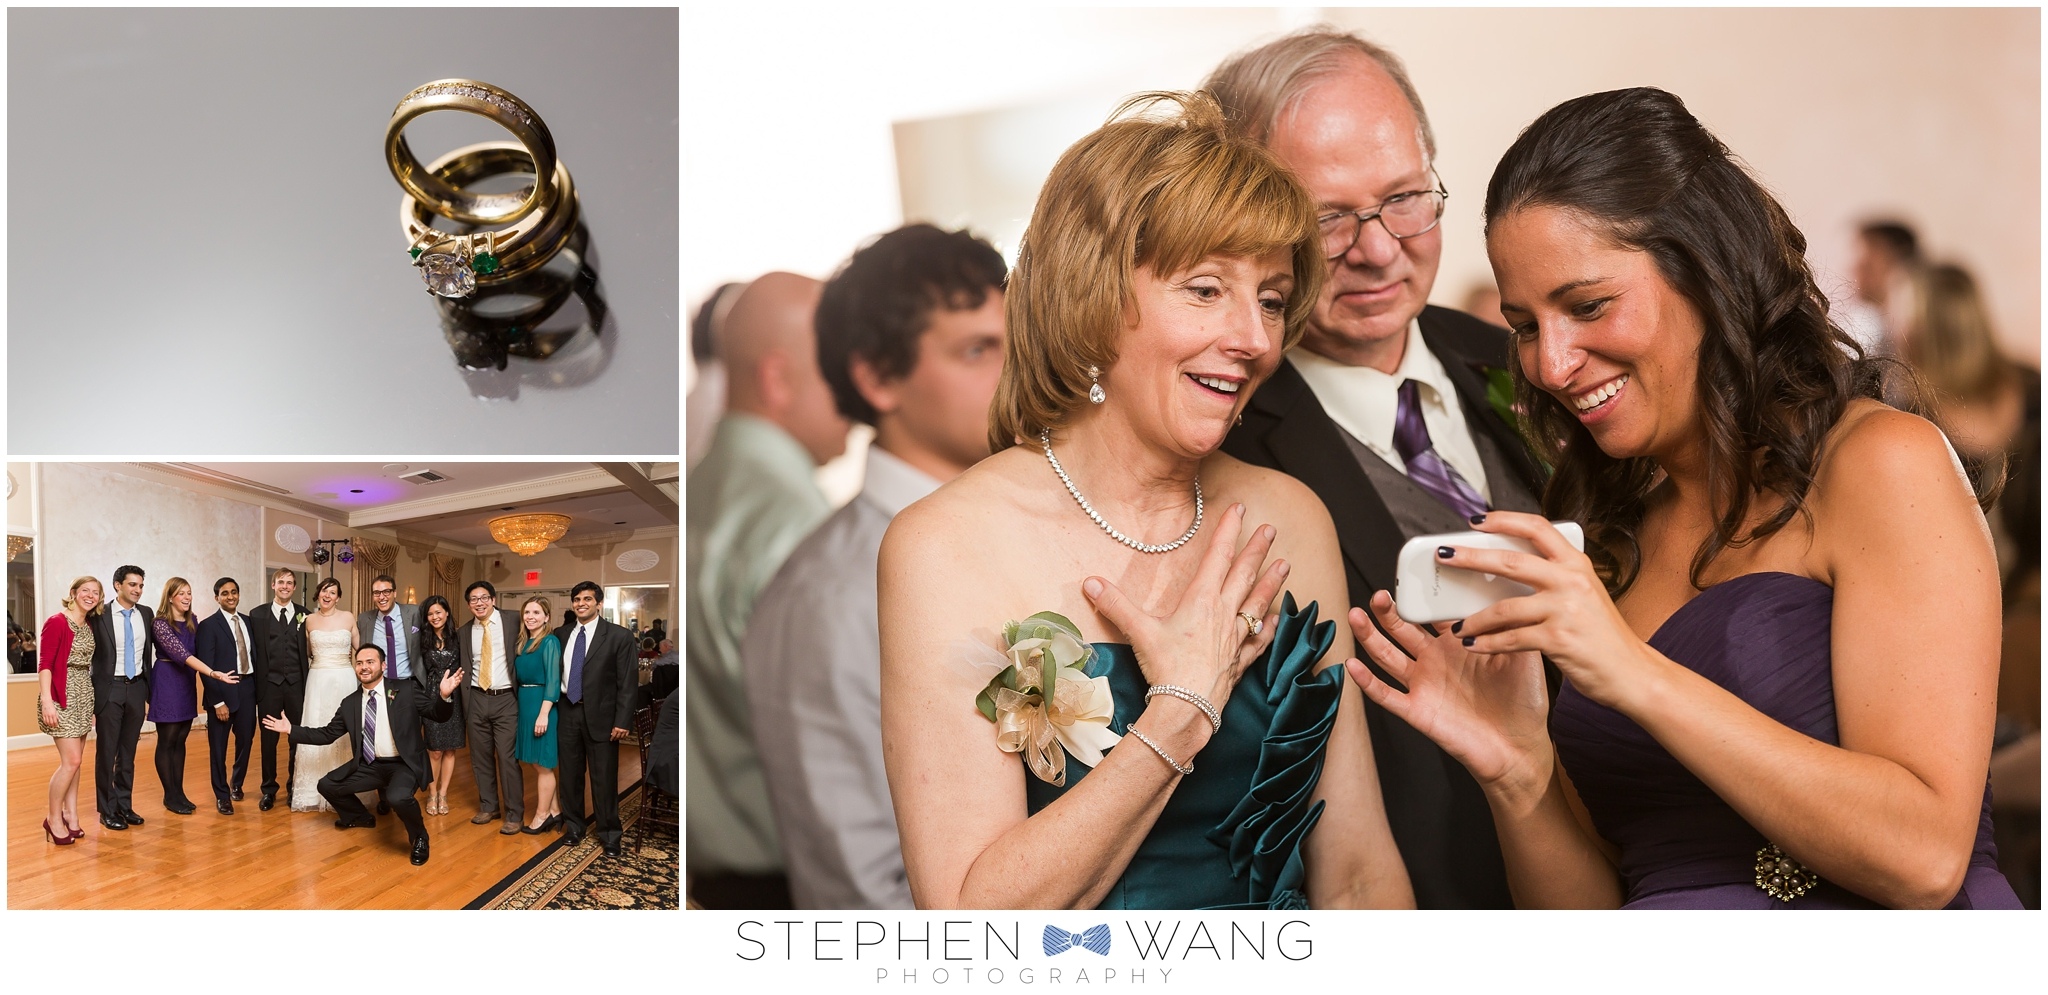 Stephen Wang Photography Wedding Connecticut CT Belle Terrace Avon Old Farms New England Wedding New Haven-11-17_0029.jpg